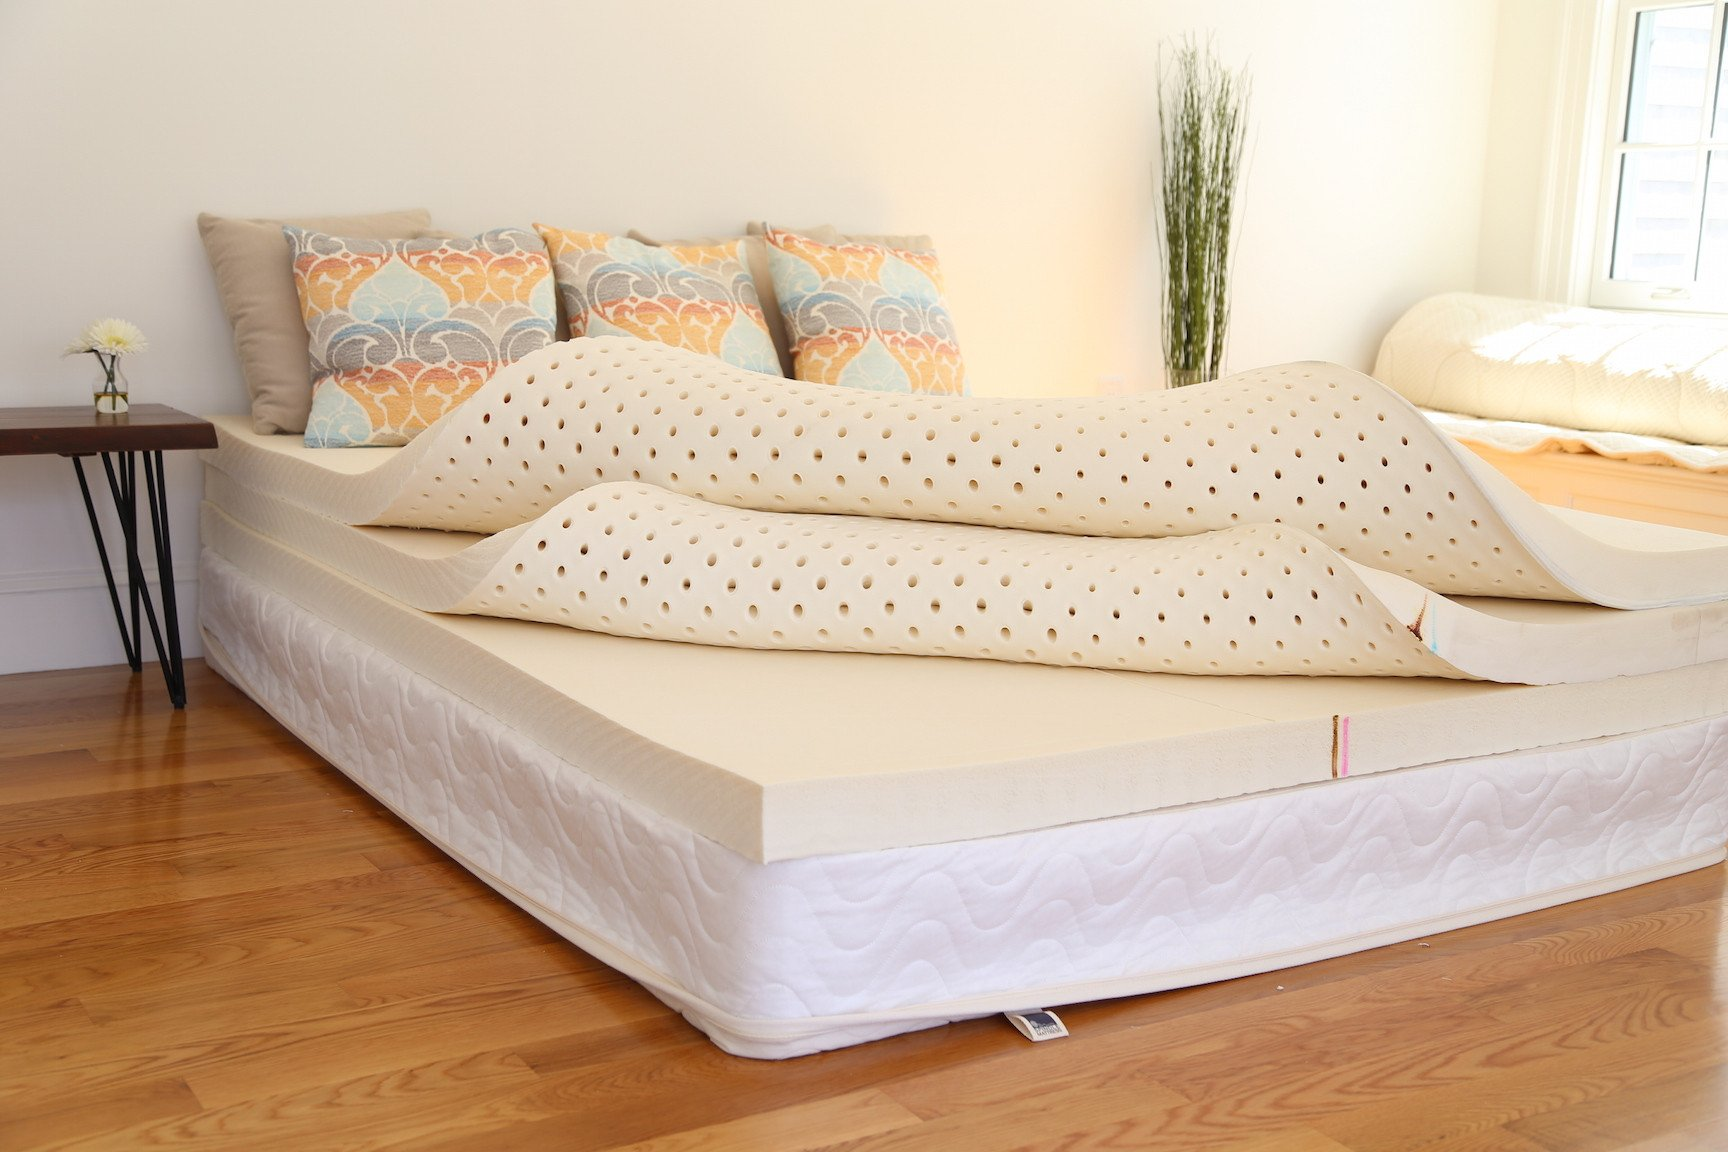 The Spindle natural latex mattress without the cotton/wool zippered cover pictured here. Three 3-inch Dunlop latex foam layers make up the core of the mattress.